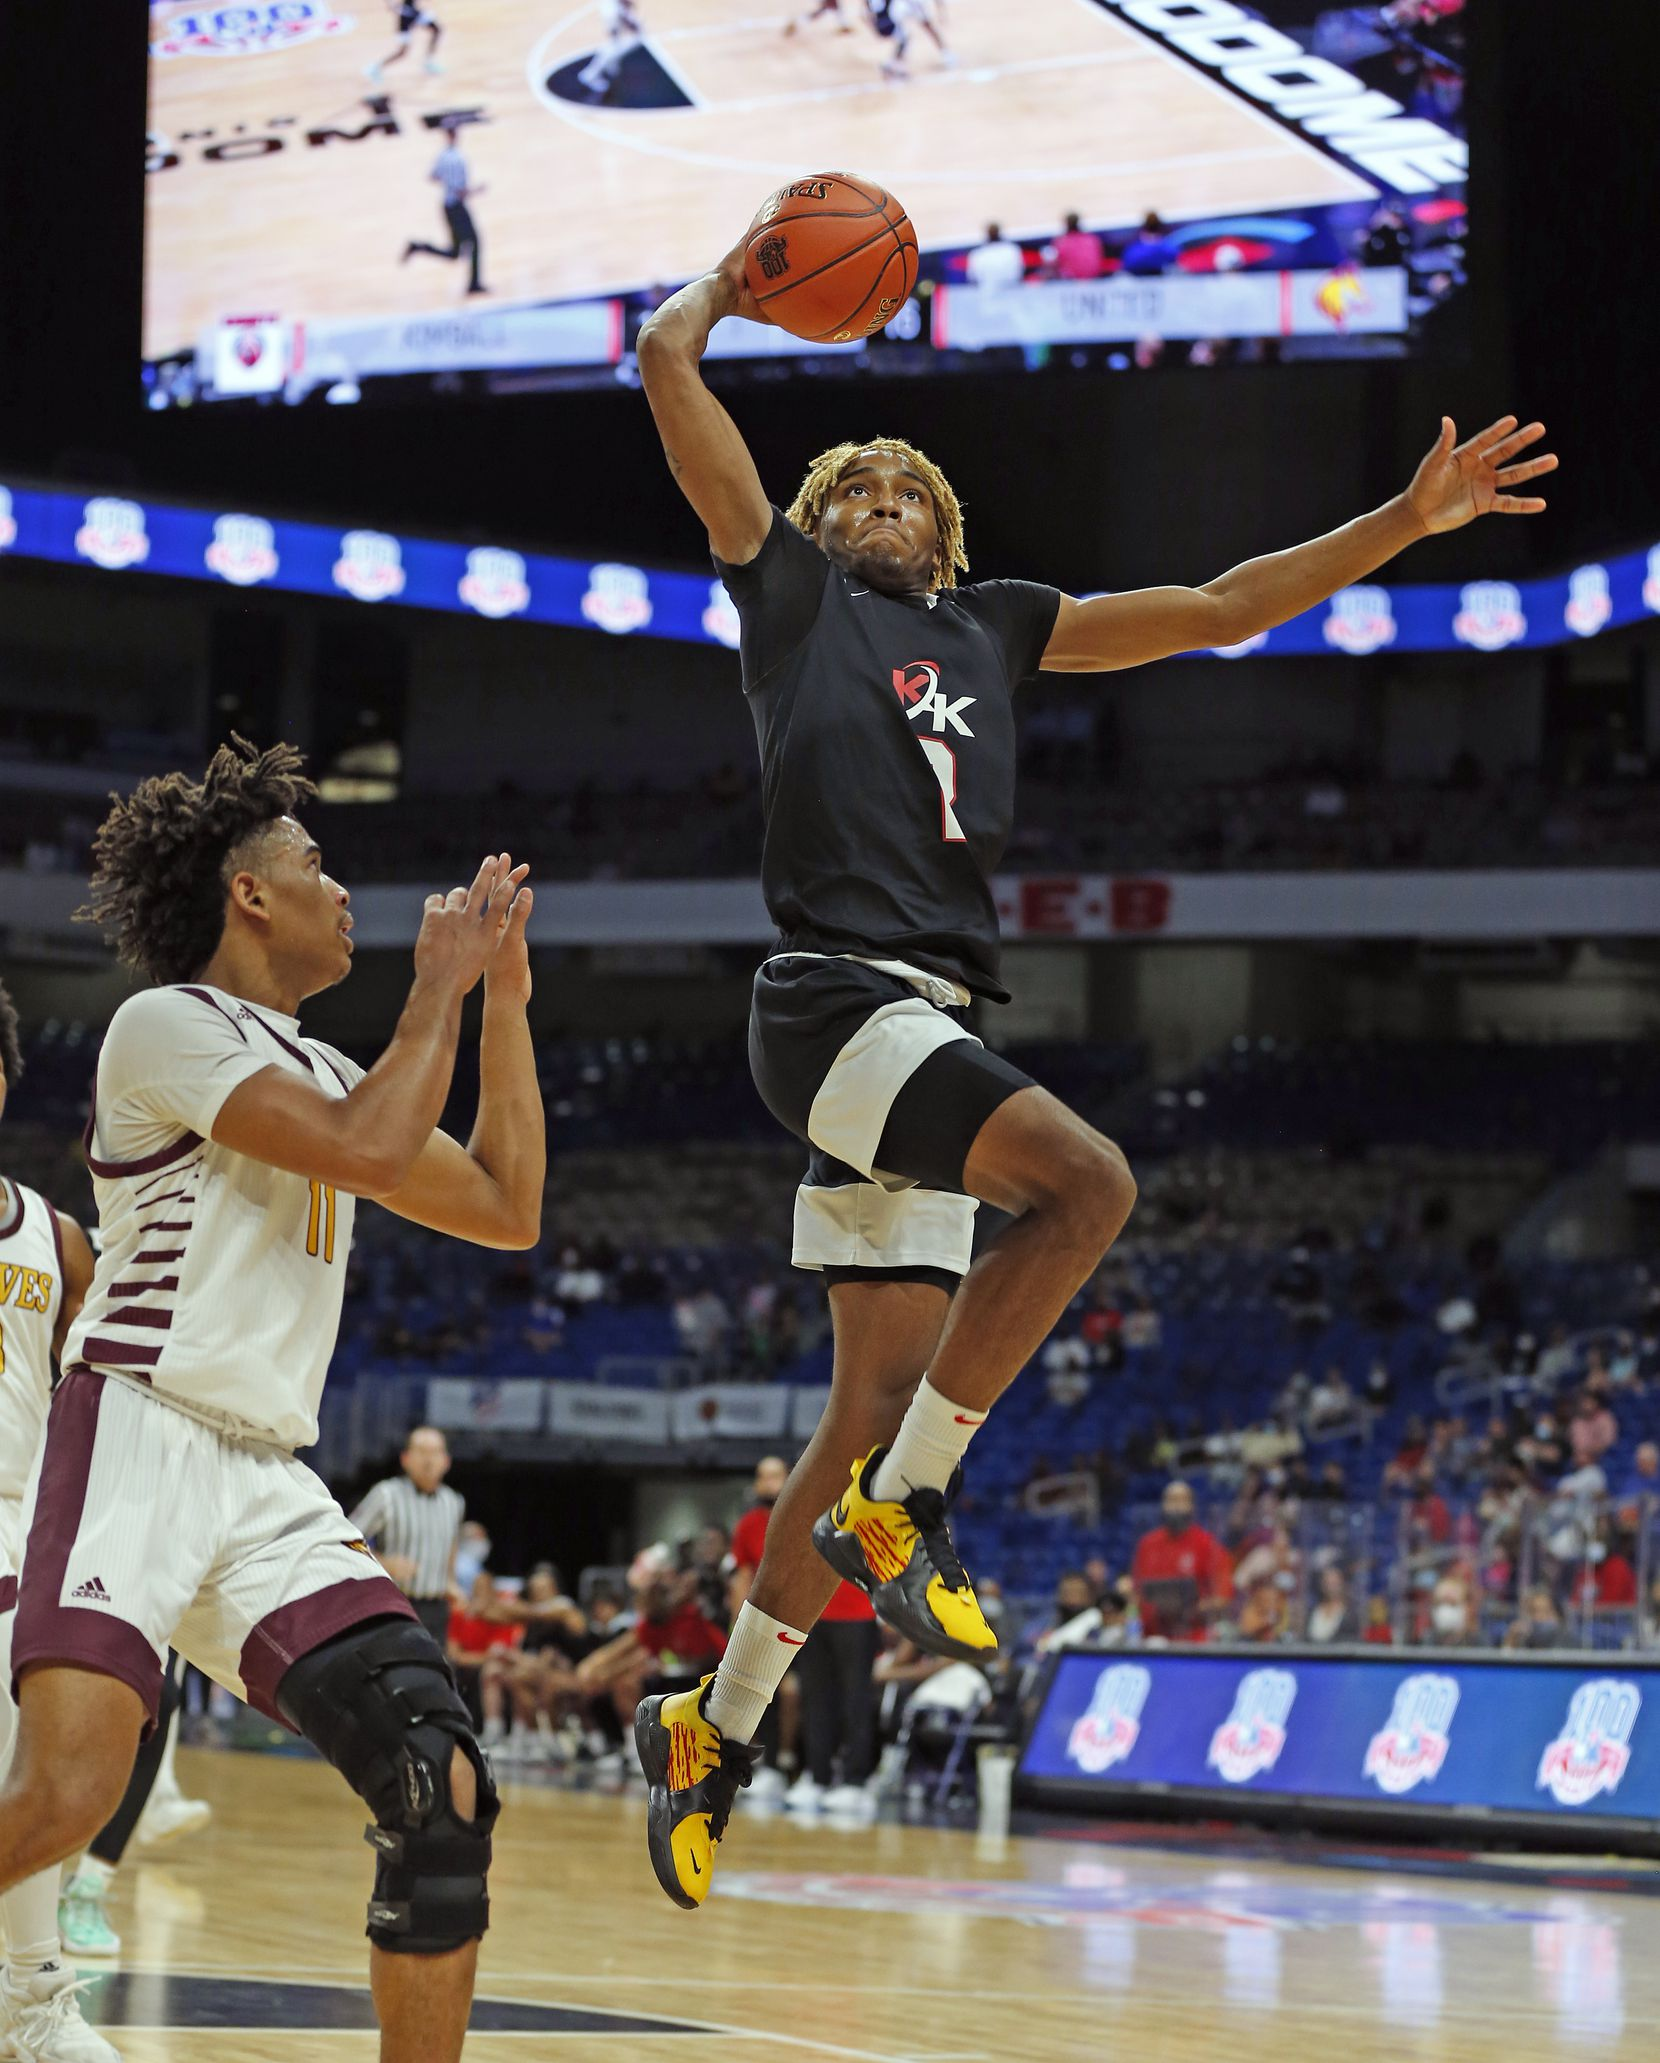 Dallas Kimball Arterio Morris #2 slams a dunk. UIL boys Class 5A basketball state championship game on Friday, March 12, 2021 at the Alamodome.